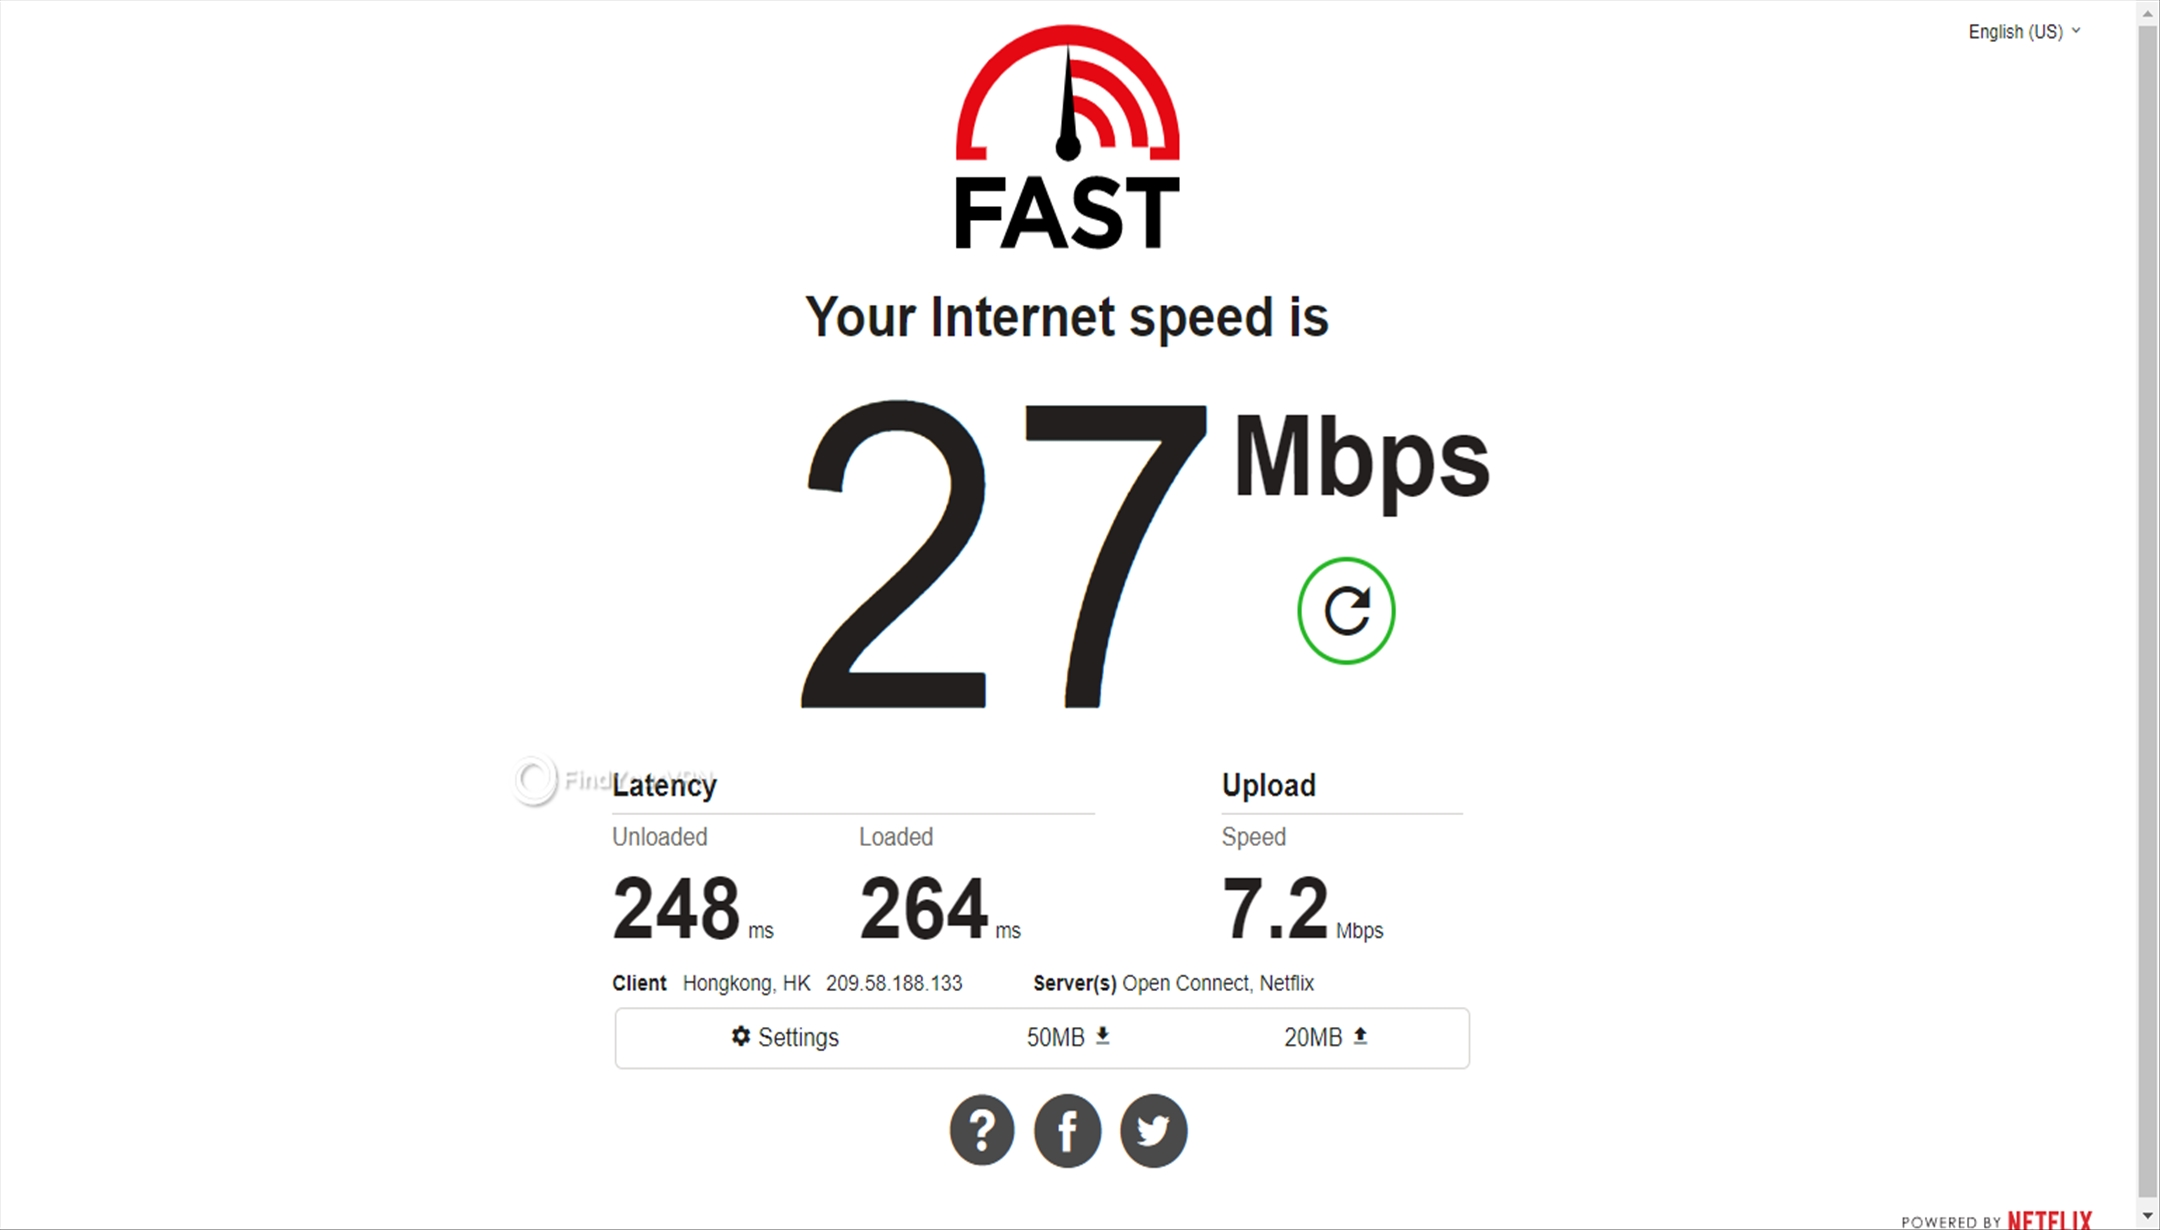 The speed test for Perfect Privacy VPN's Hong Kong server